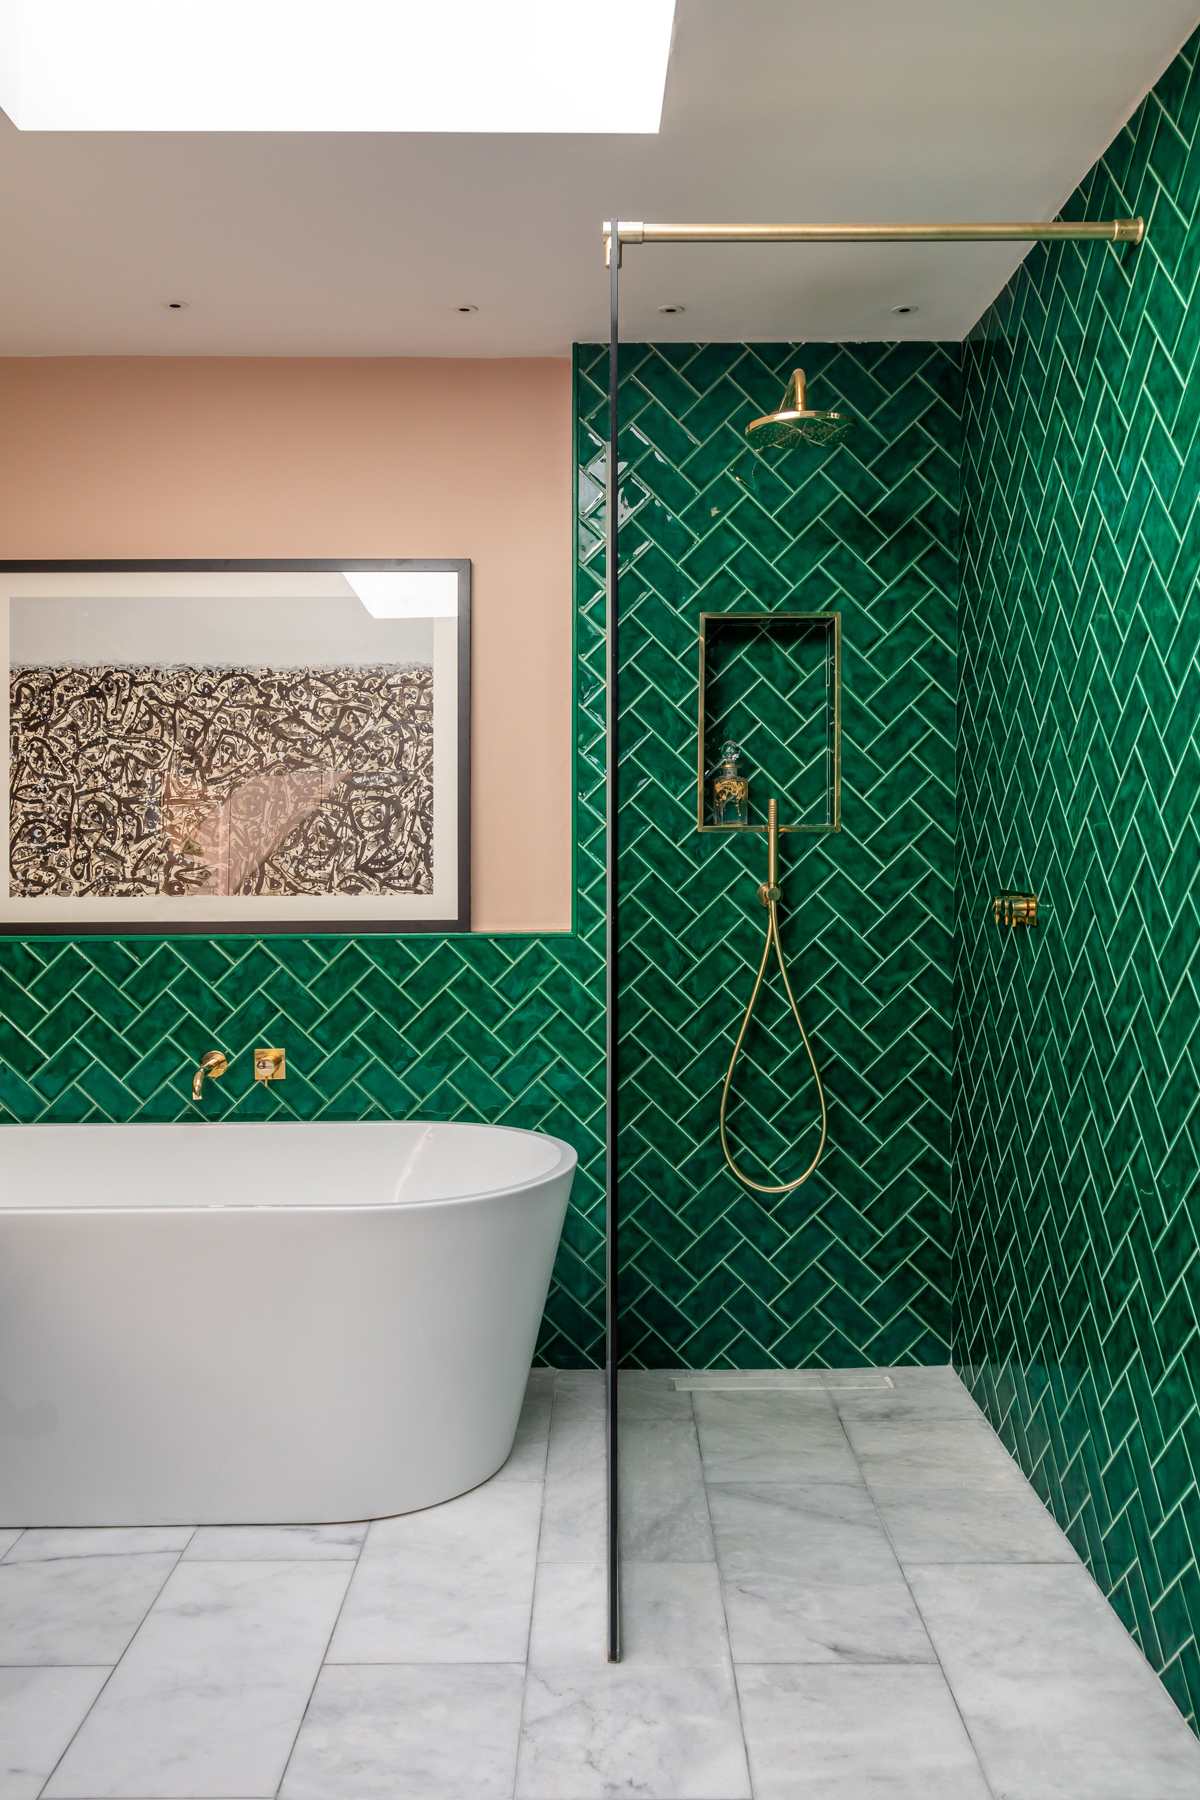 BRING COLOUR AND PATTERN INTO THE BATHROOM SAYS DESIGNER LUCY BARLOW